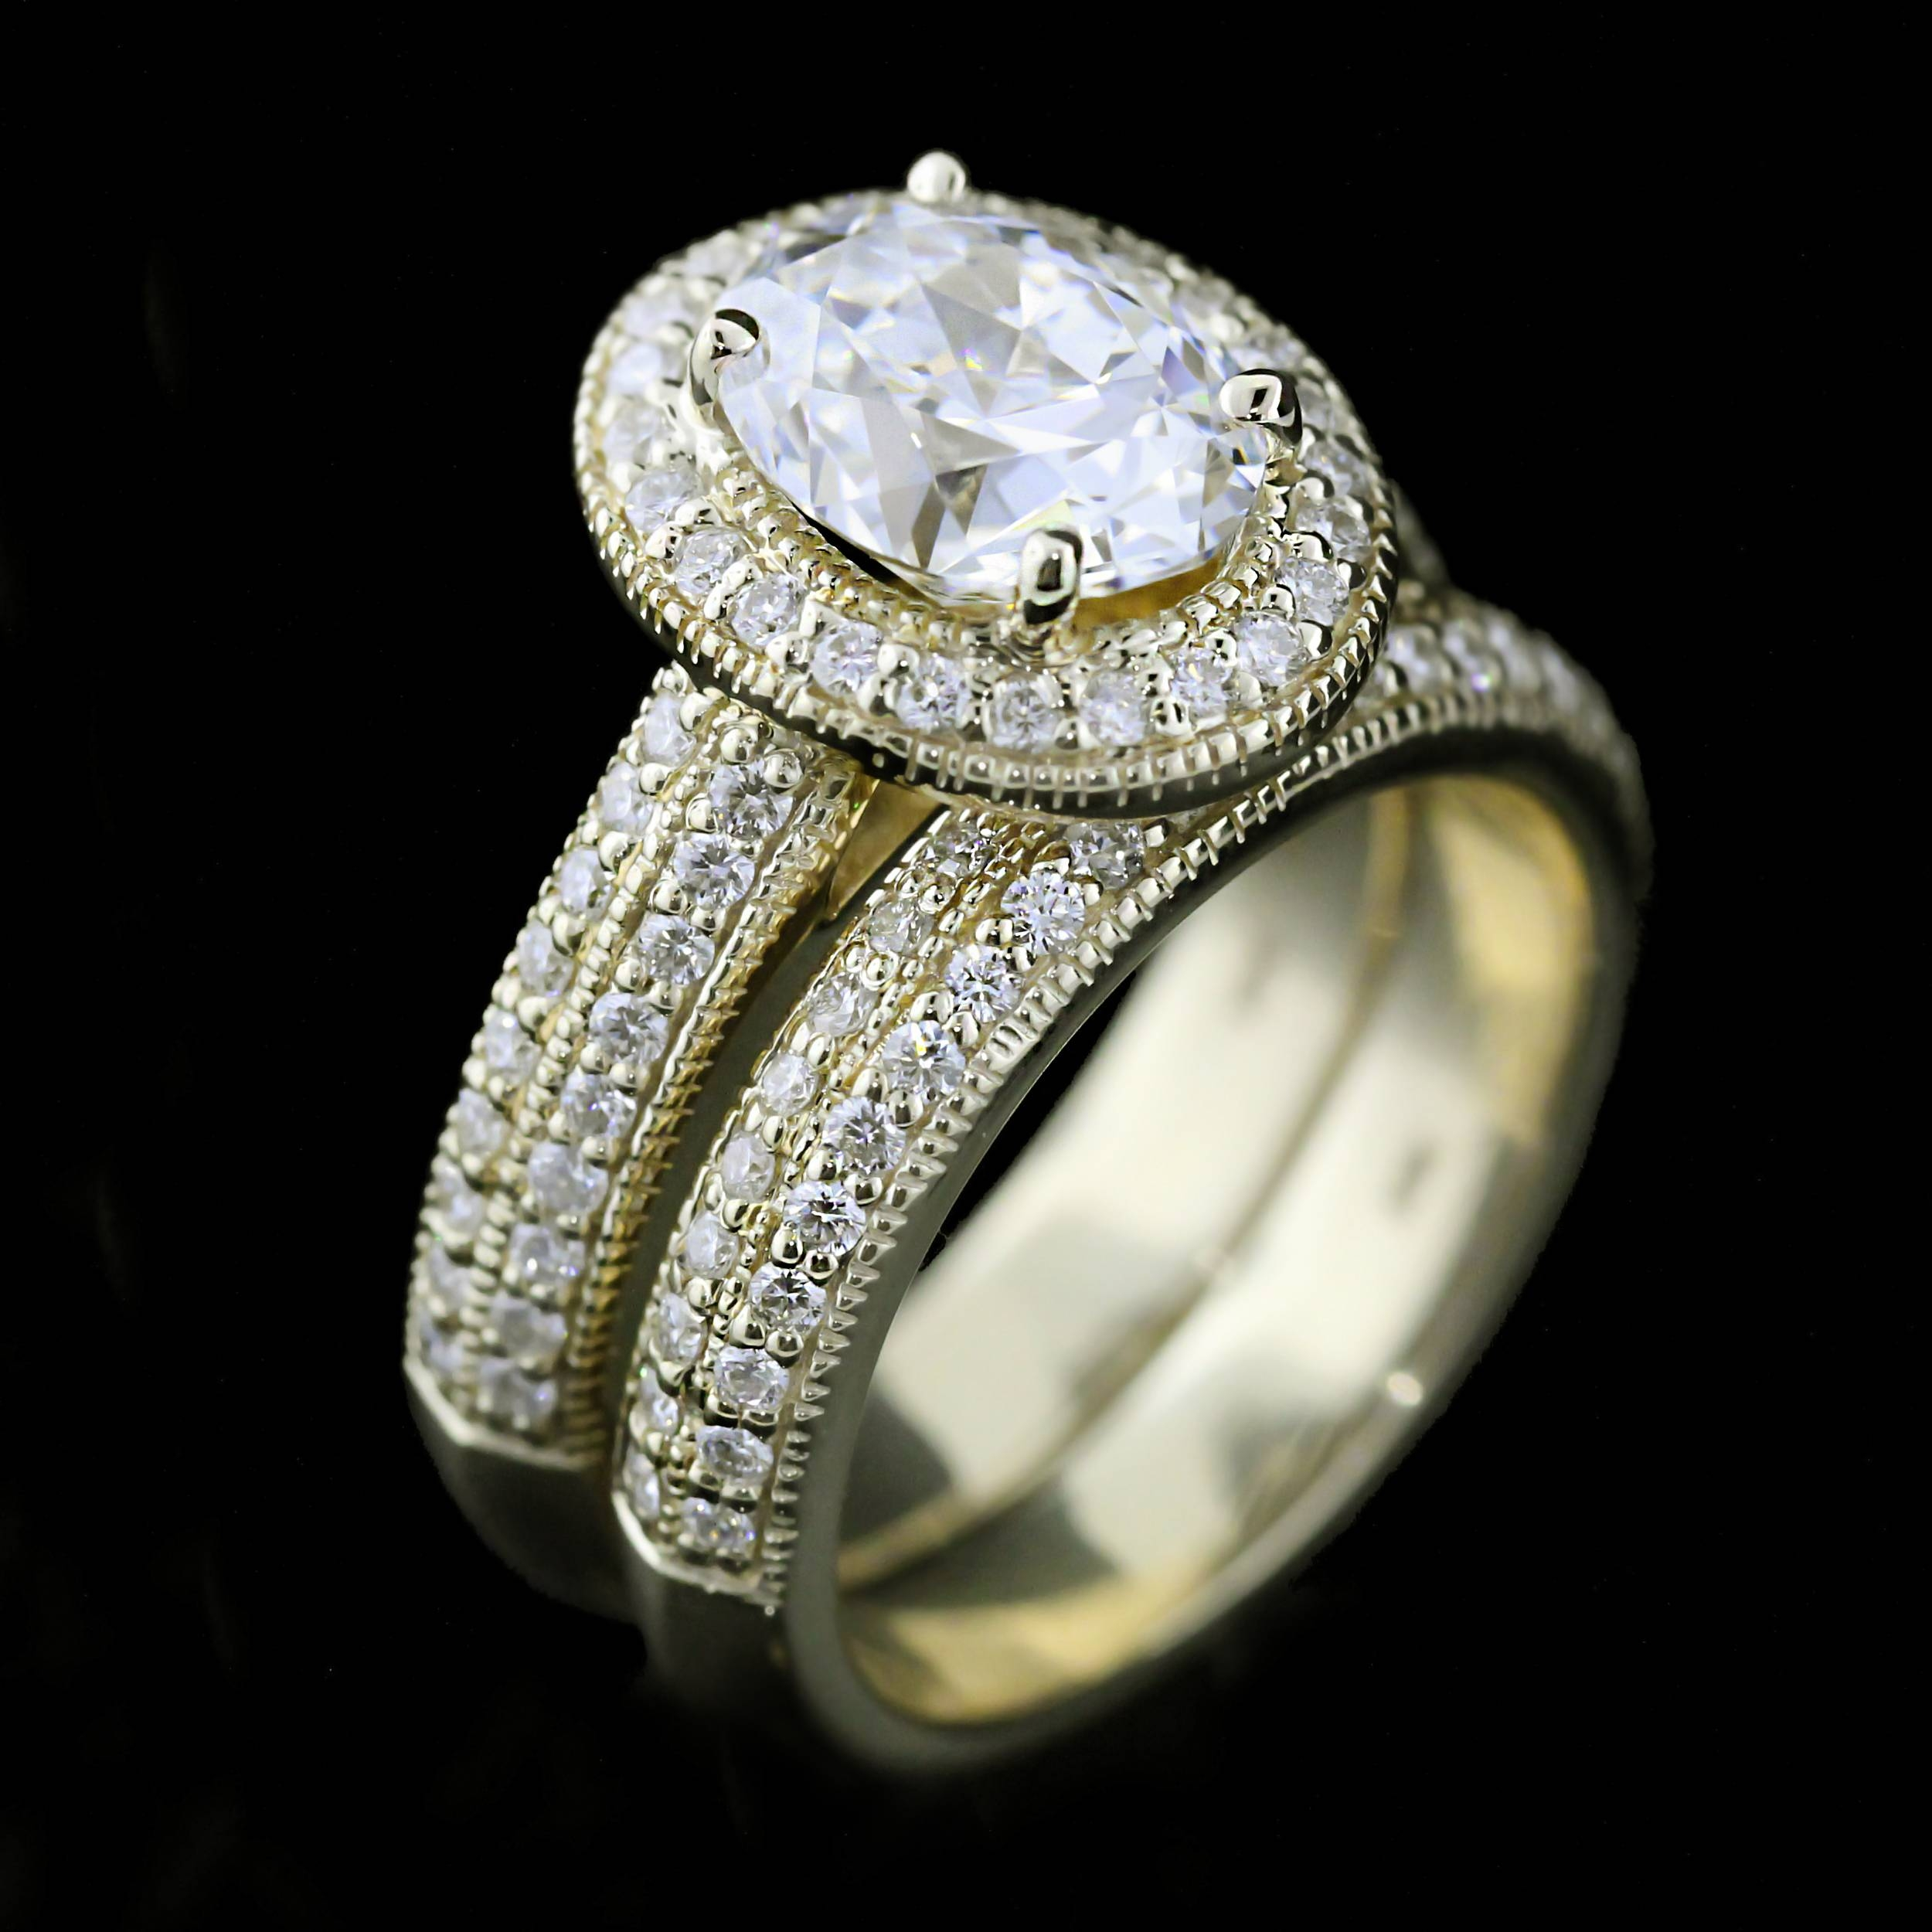 stone shipping engagement overstock miadora created diamond accent watches and white today miadonna ring rings sapphire free product jewelry gold